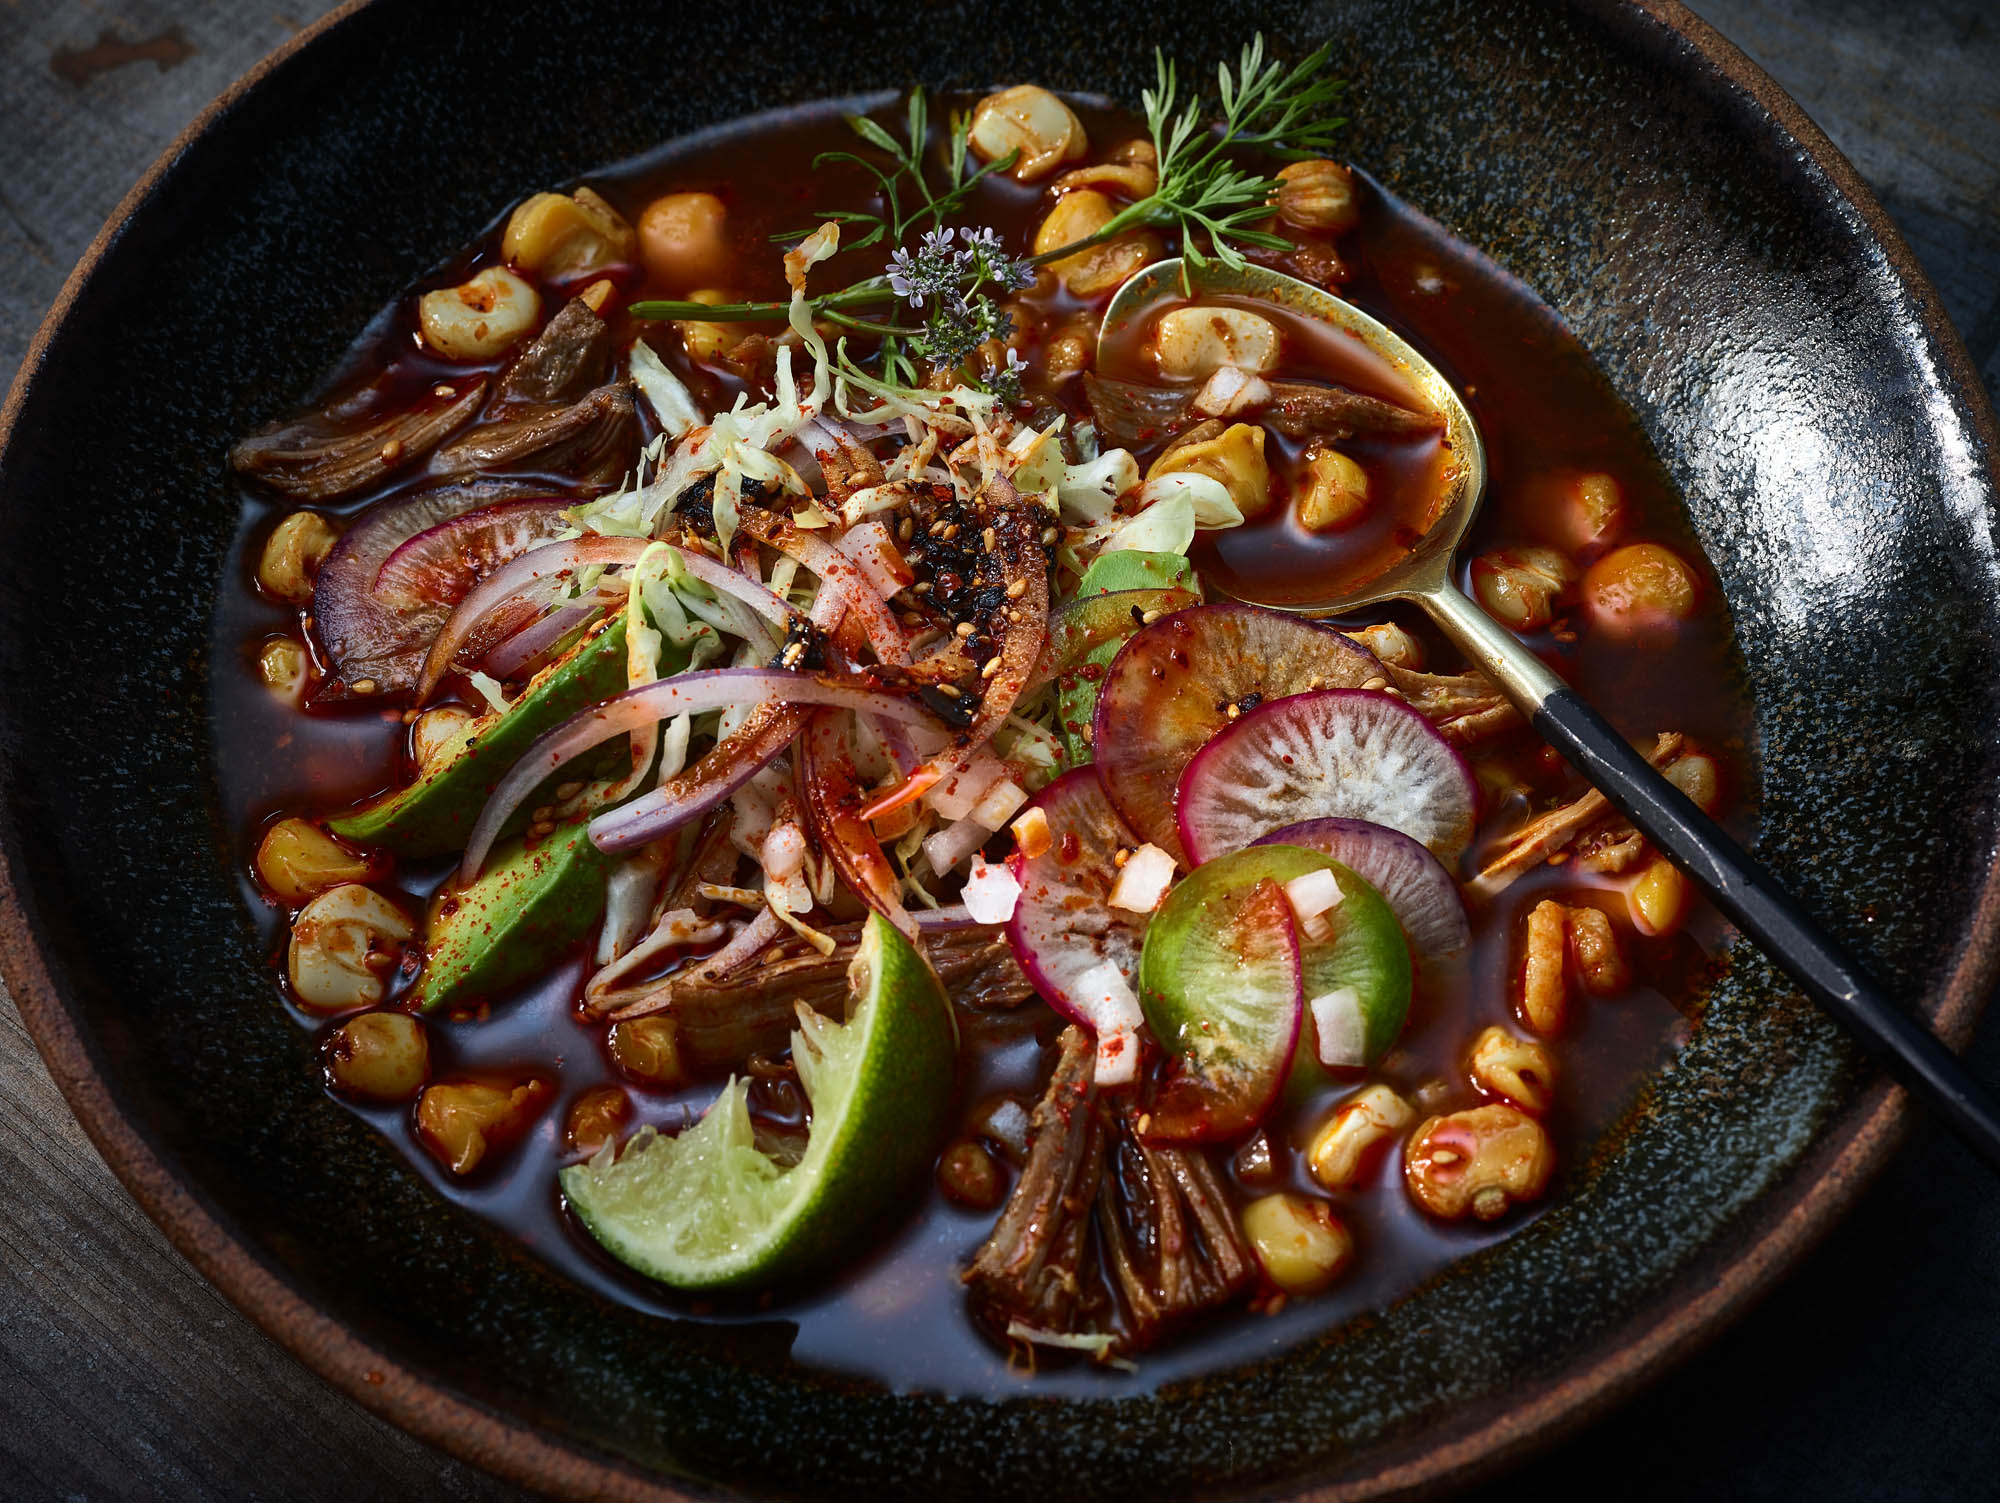 Mexico inspired editorial food photography - close up of food